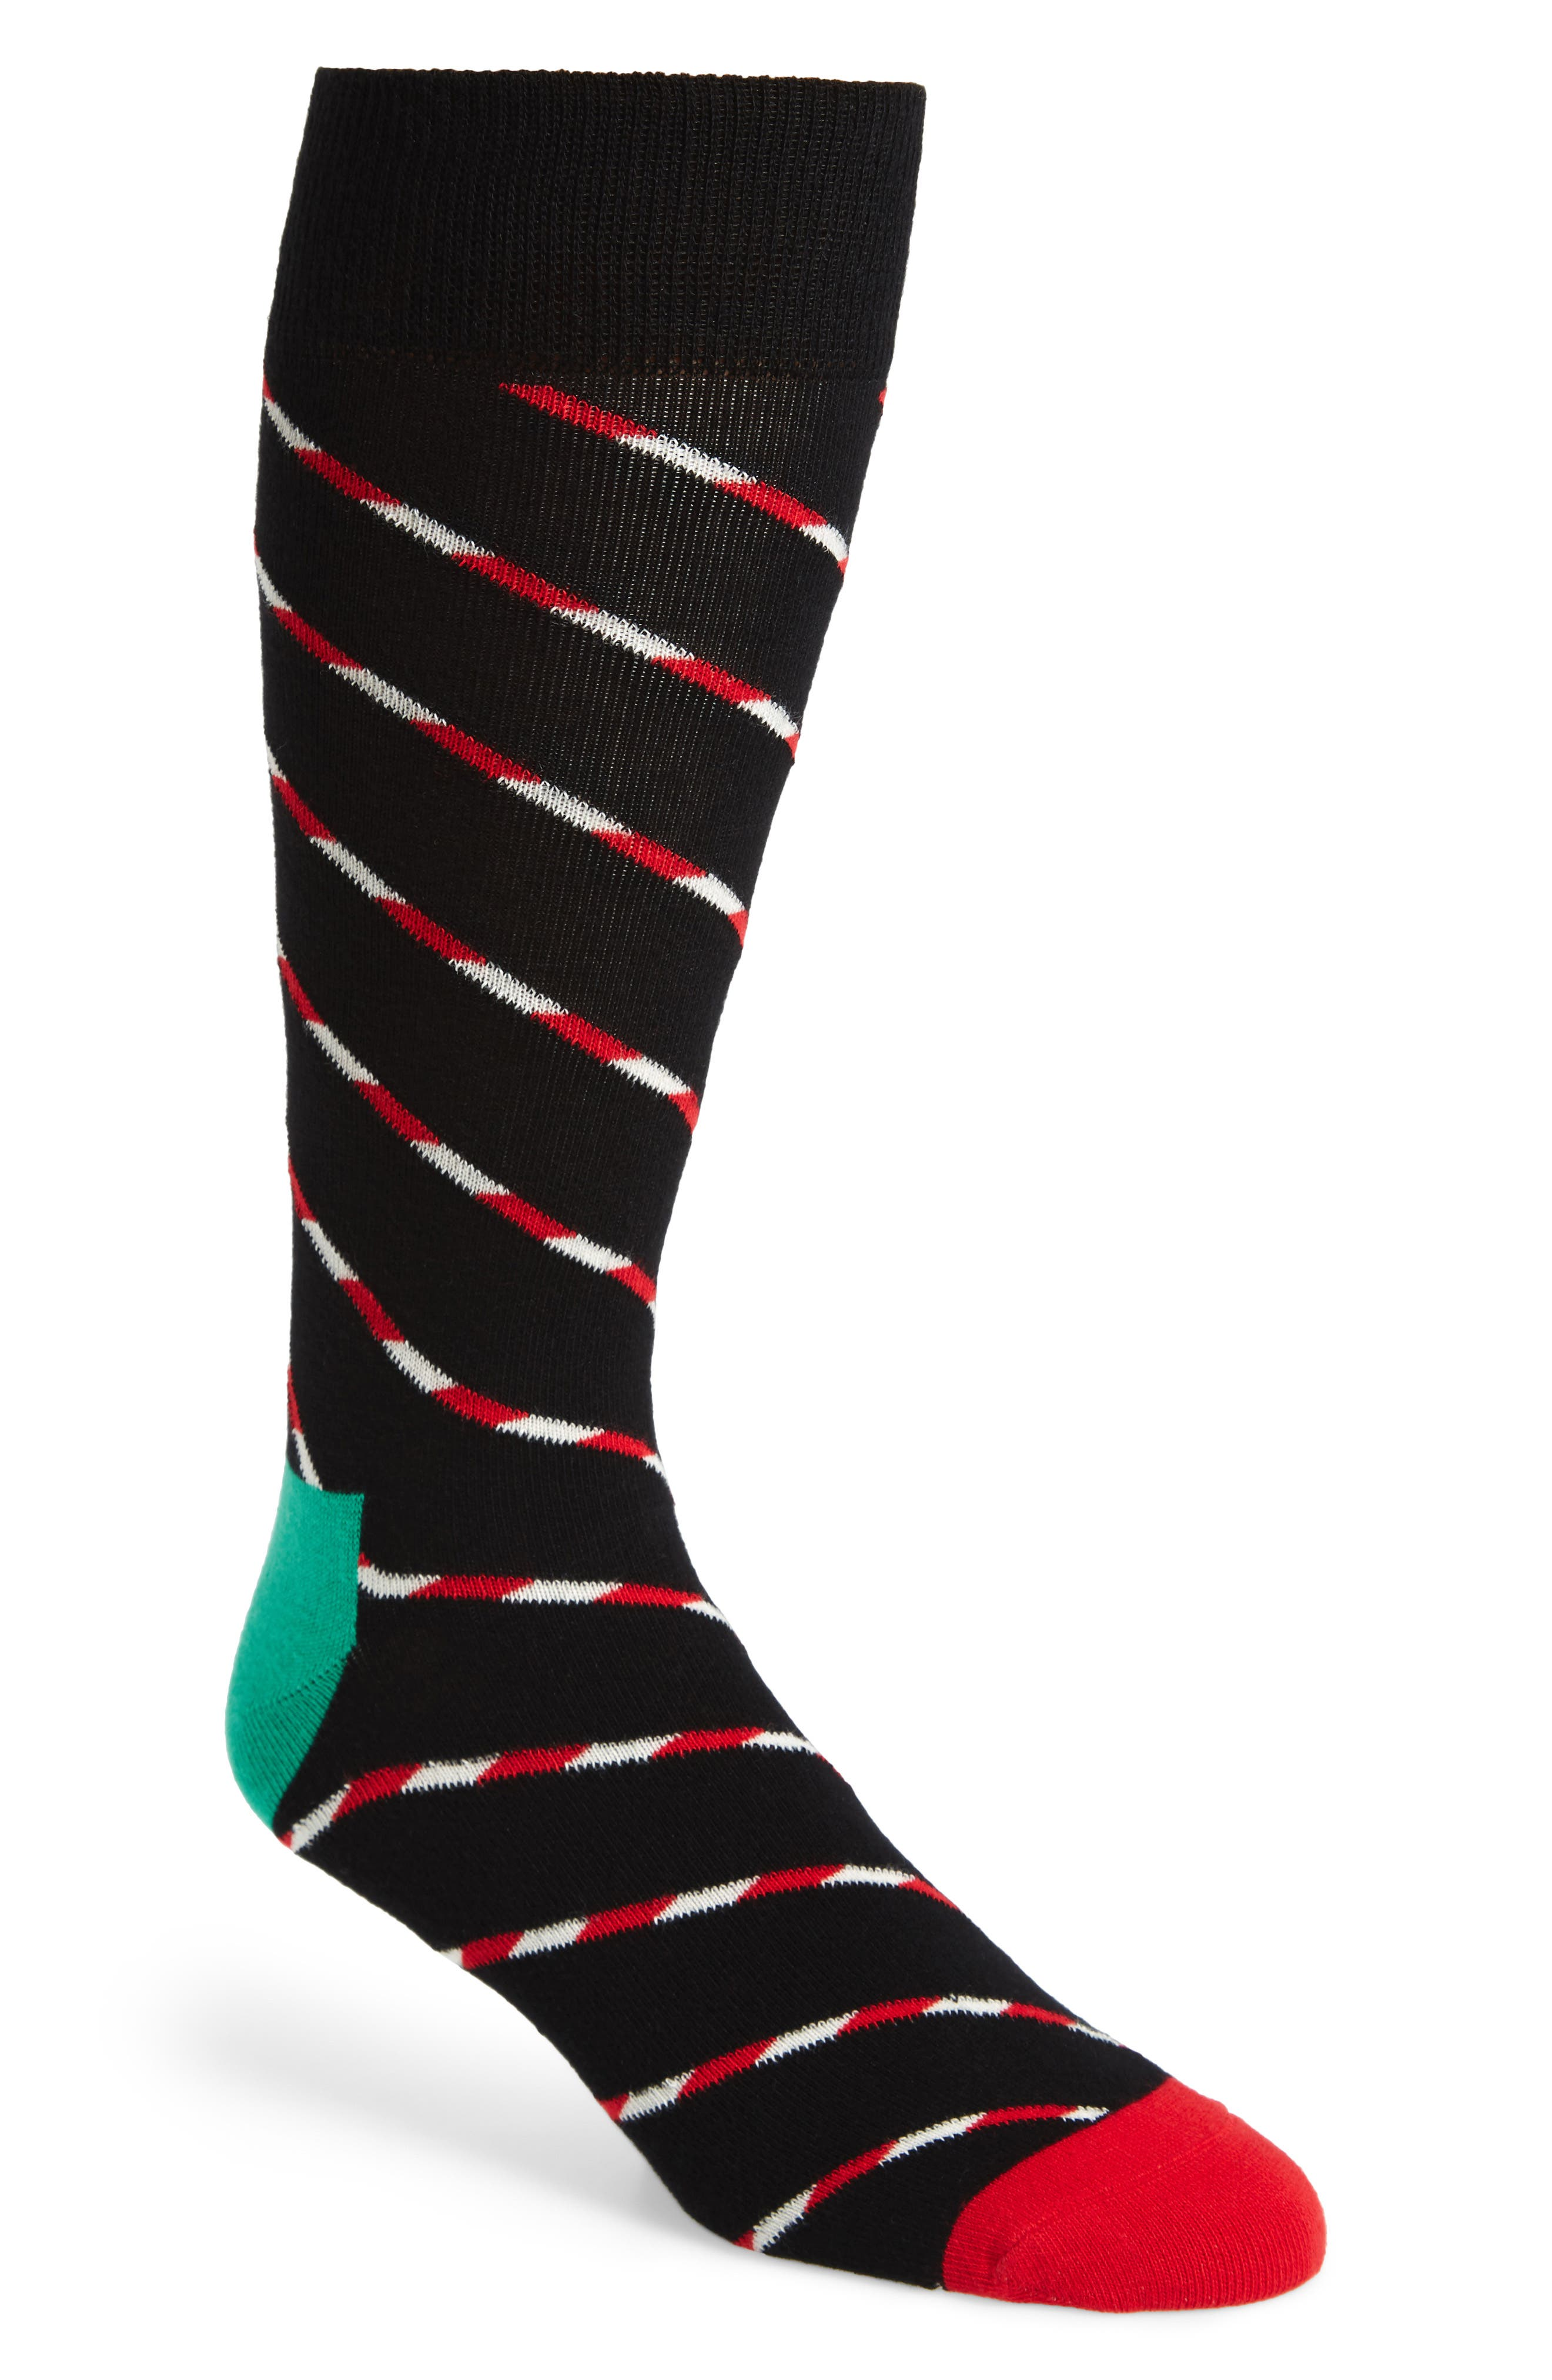 Candy Cane Stripe Socks,                         Main,                         color,